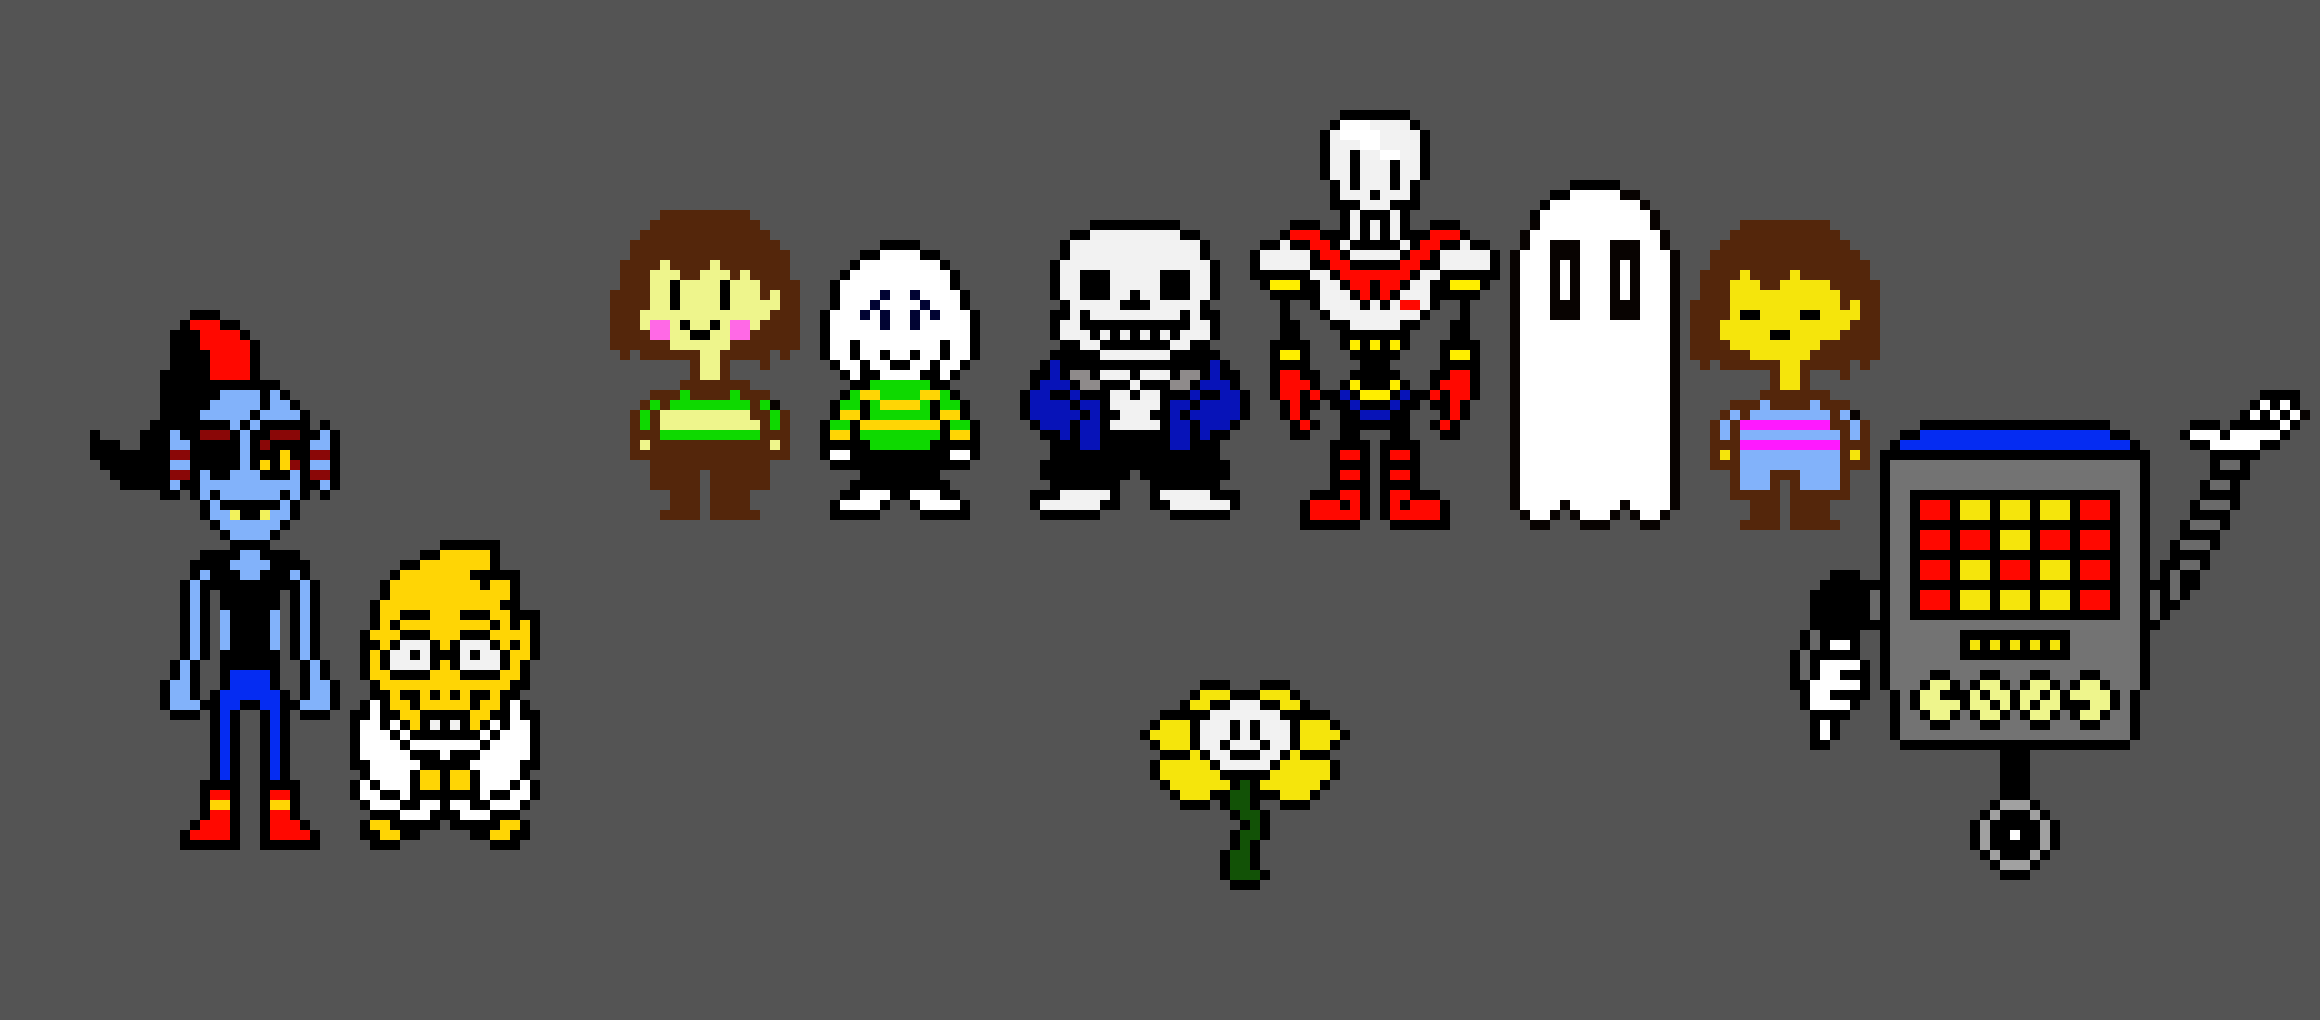 UNDERTALE PIXEL ART USE IT FOR ALL YOUR UNDERTALE NEEDS FREE FOR EDITING THIS AD IS SPONCERD BY MTT PRODUCTS GOODBYE